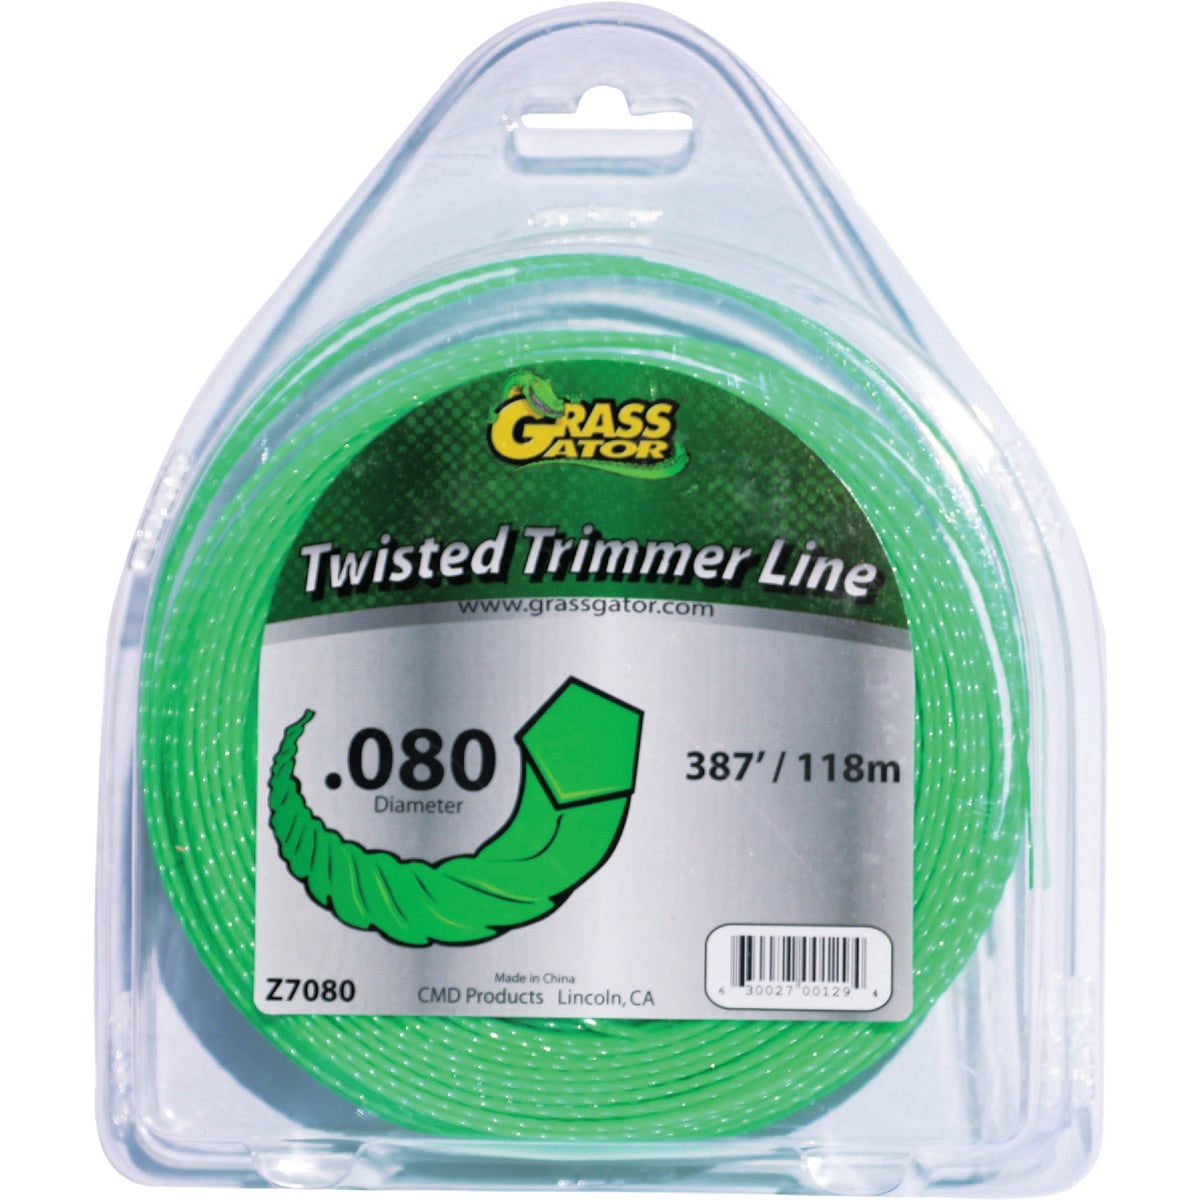 .080 TRIMMER LINE - Z7080 by C M D Products